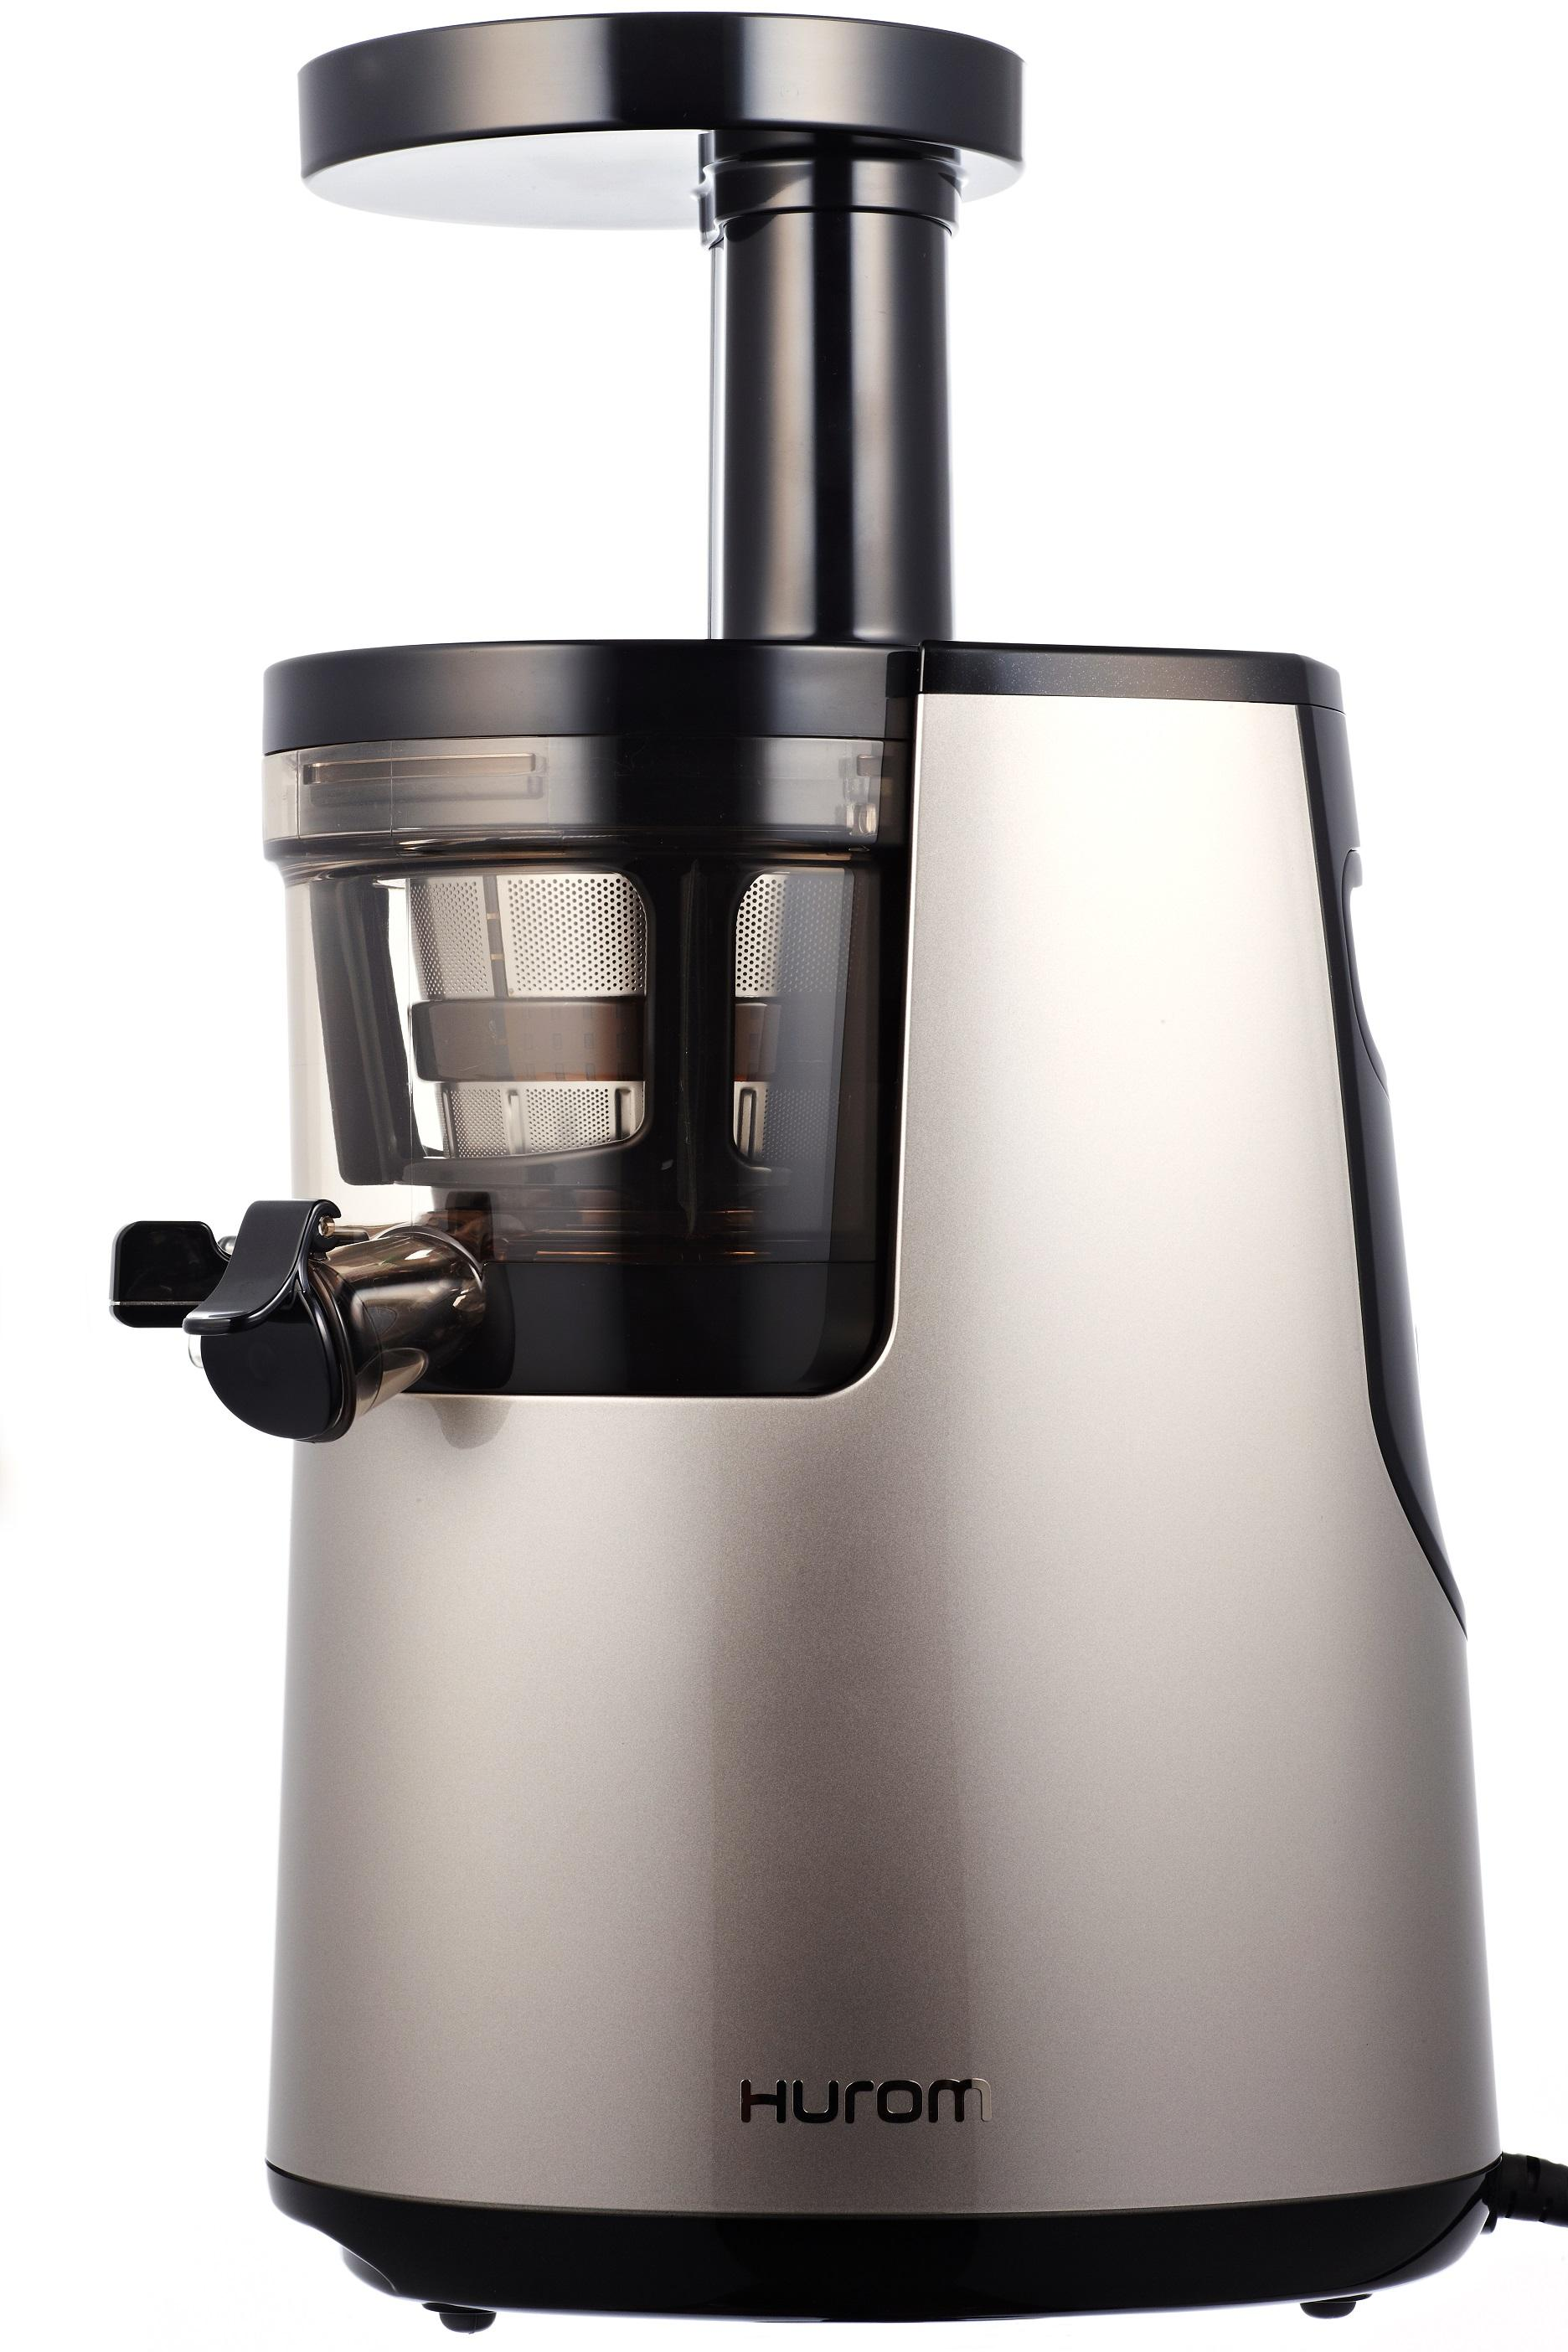 Hurom Slow Juicer Media Markt : Hurom HH Elite Slow Juicer Williams Sonoma AU